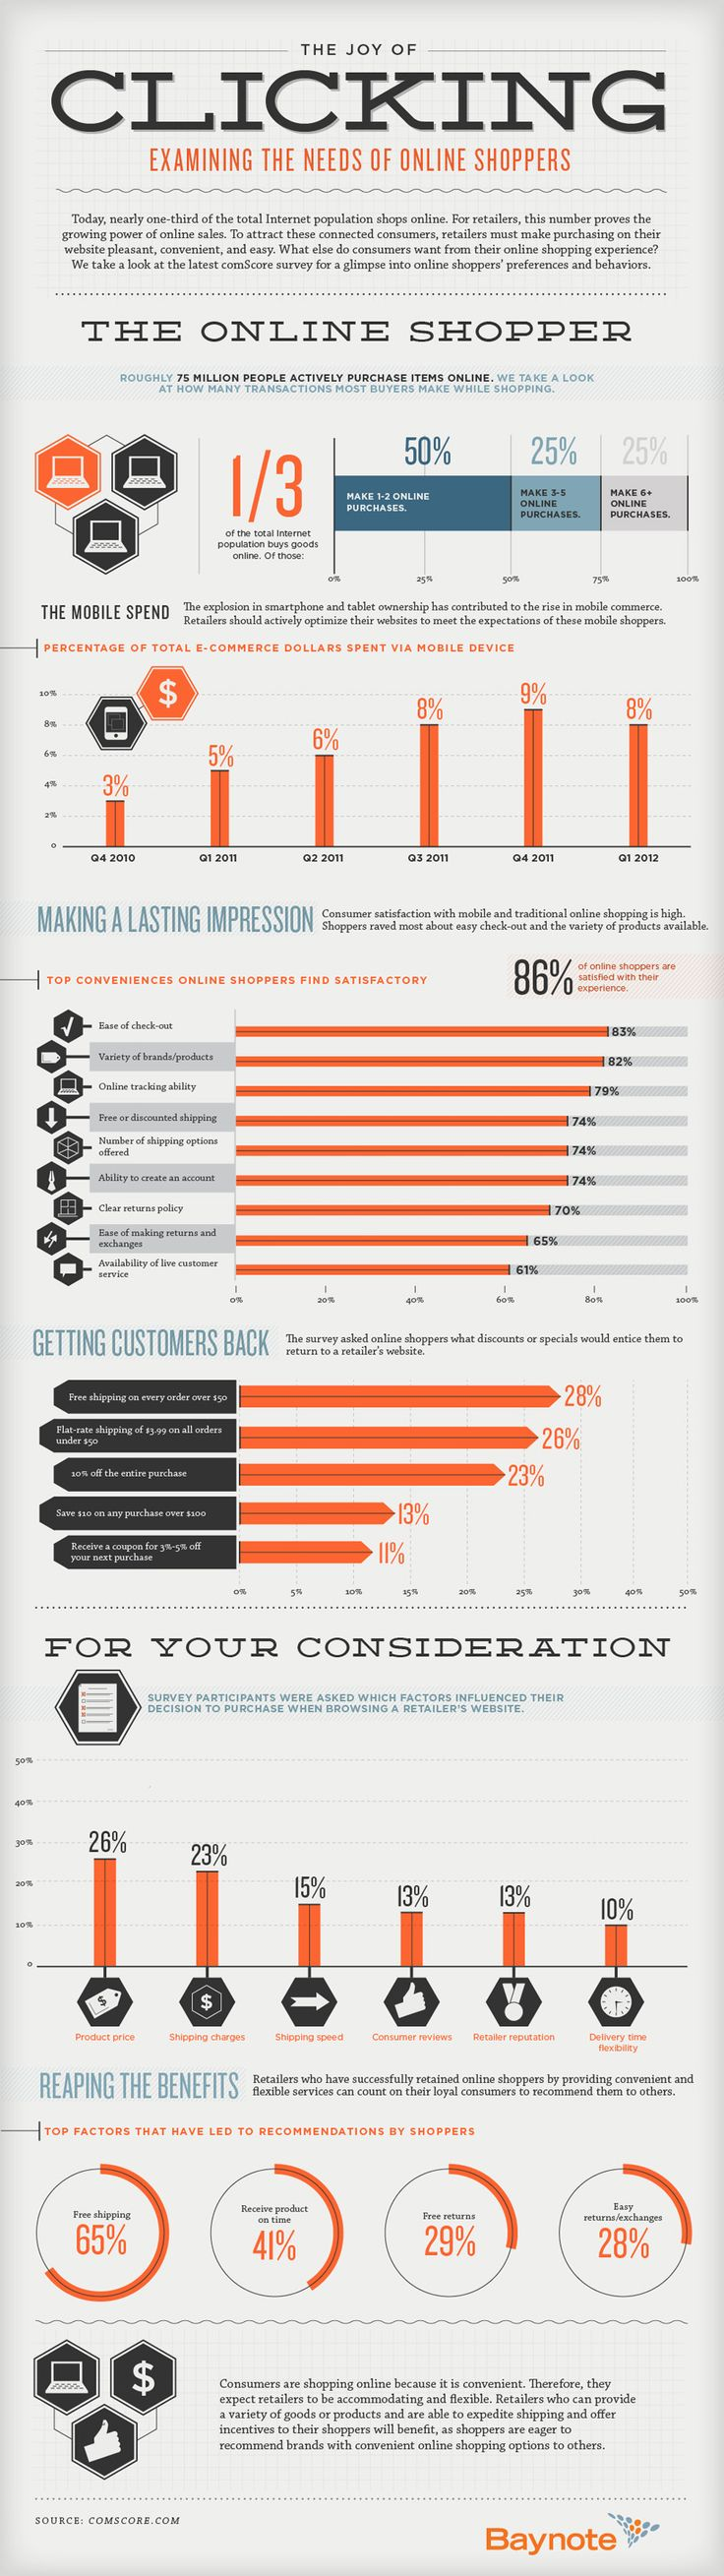 Baynote Infographic: The Joy of Clicking: Examining the Needs of Online Shoppers - Column Five Media